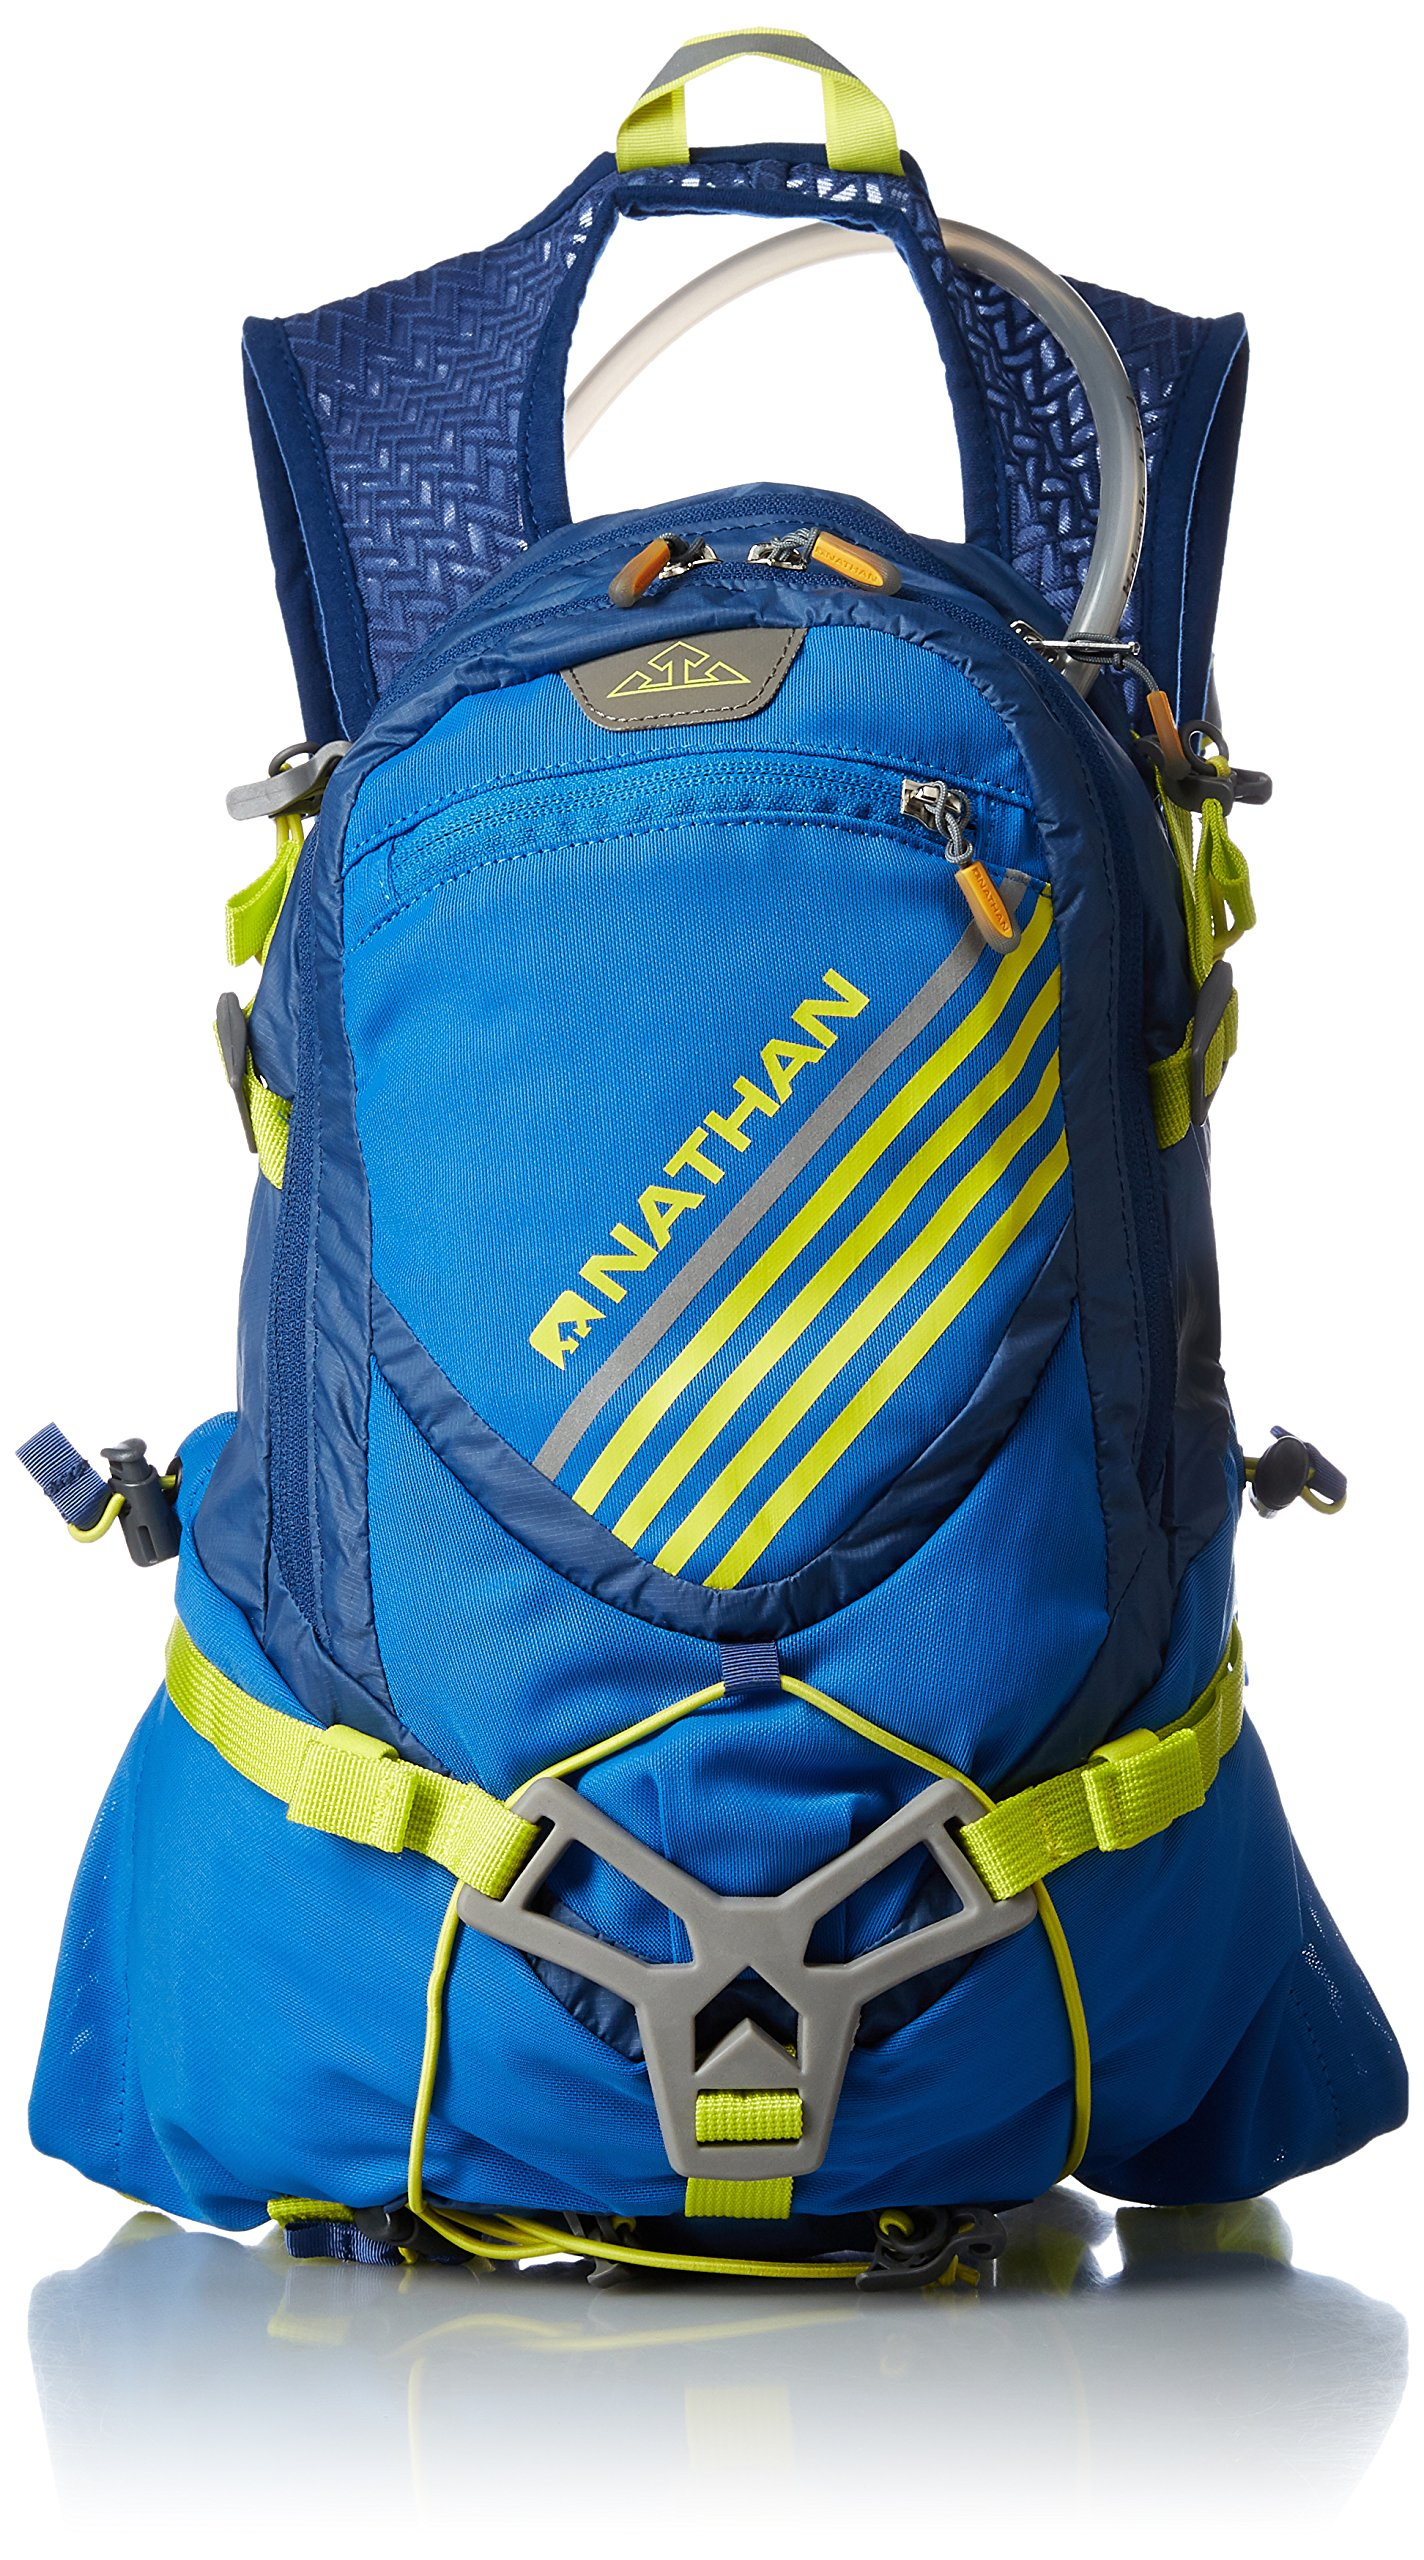 Nathan Elevation 2-Liter Hydration Vest, Nathan Blue, One Size